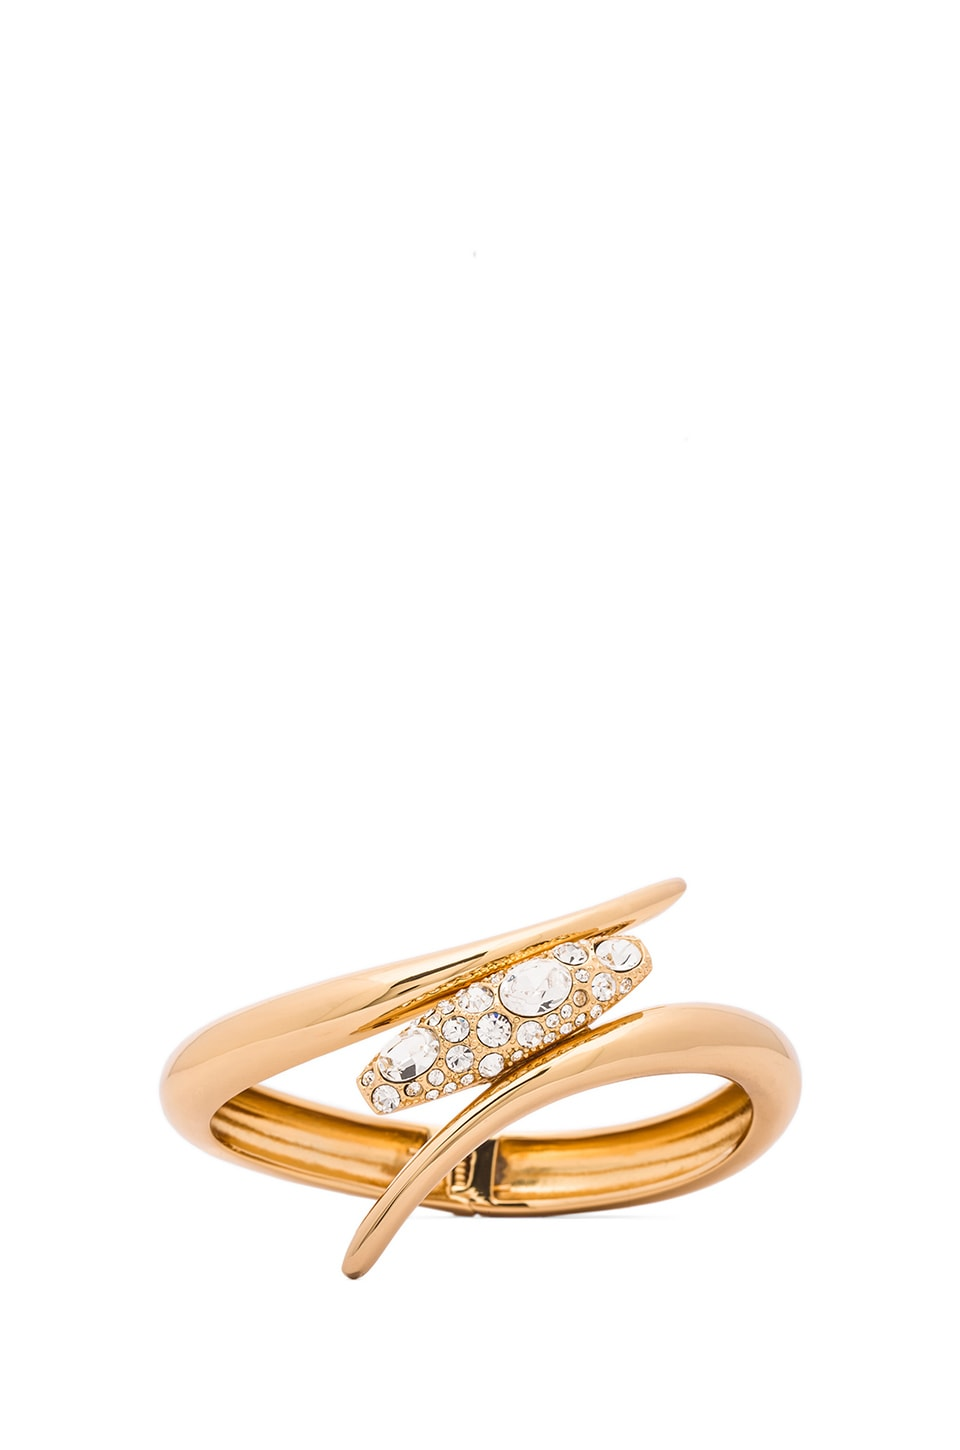 RACHEL ZOE Pave Pod Hinge Bangle in Gold